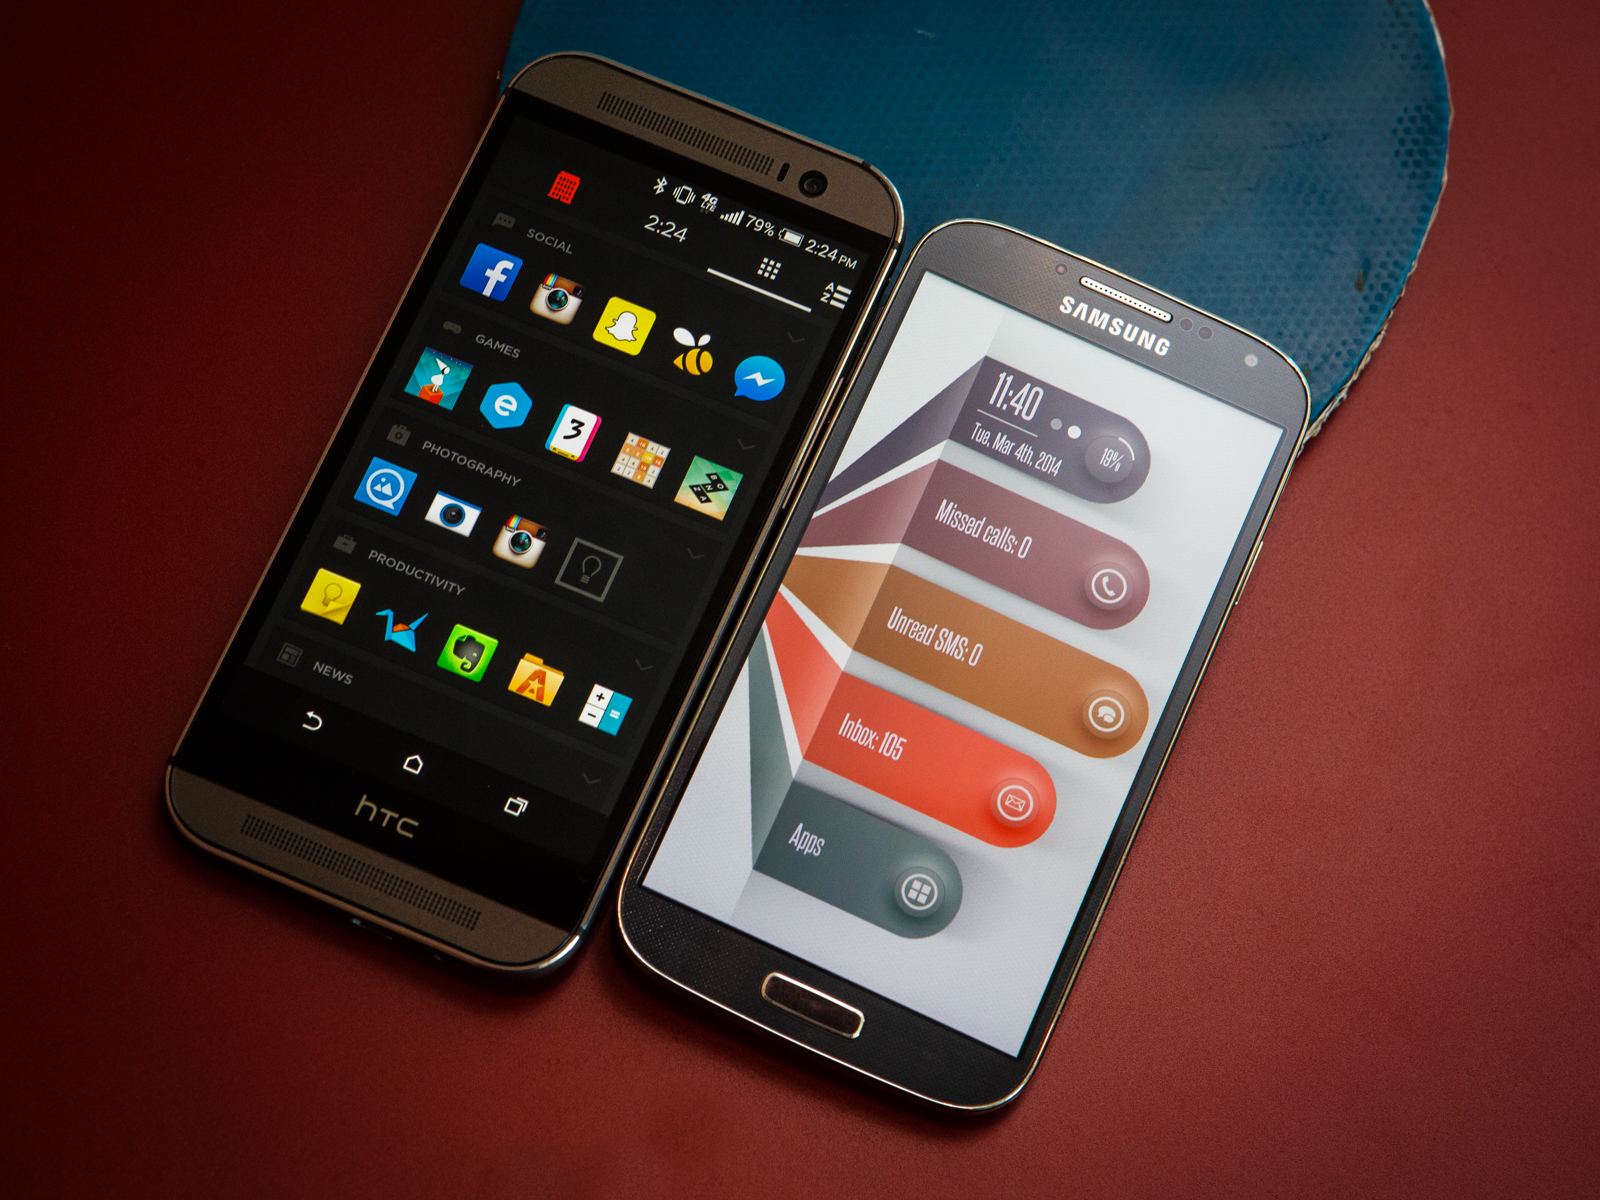 android-launcher-5701-008.jpg